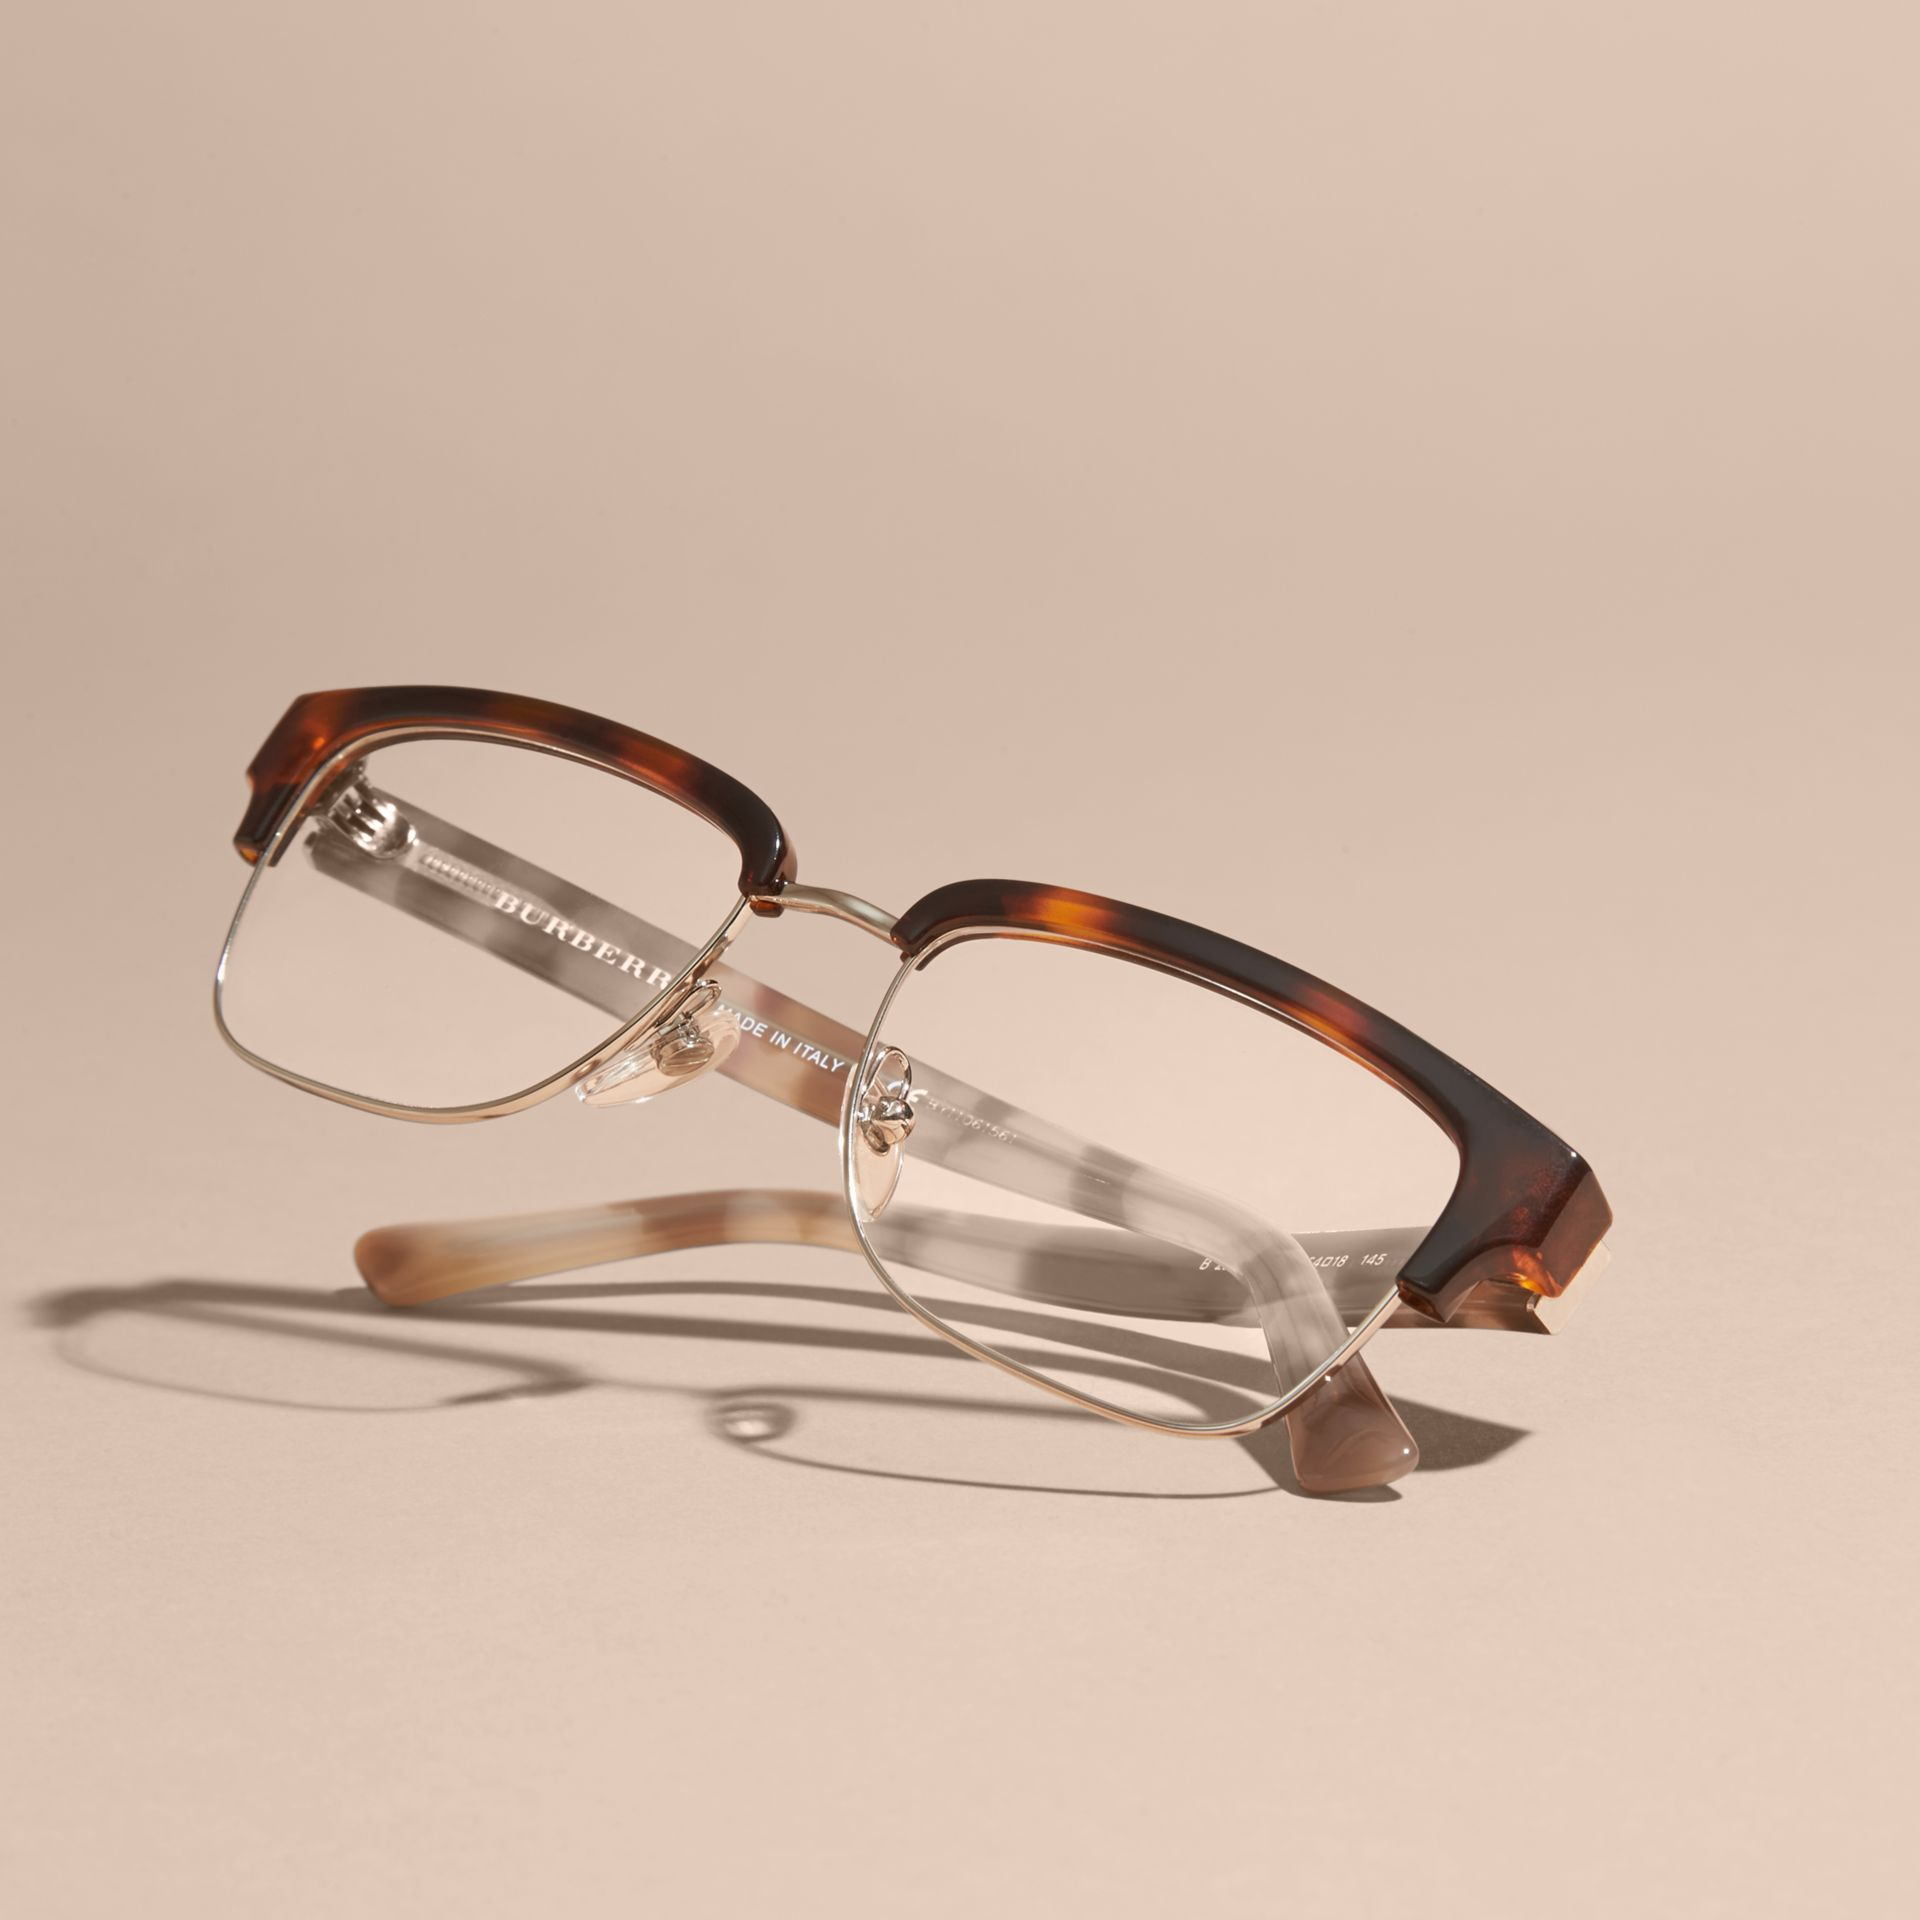 Half-rimmed Oval Optical Frames Light Russet Brown Burberry